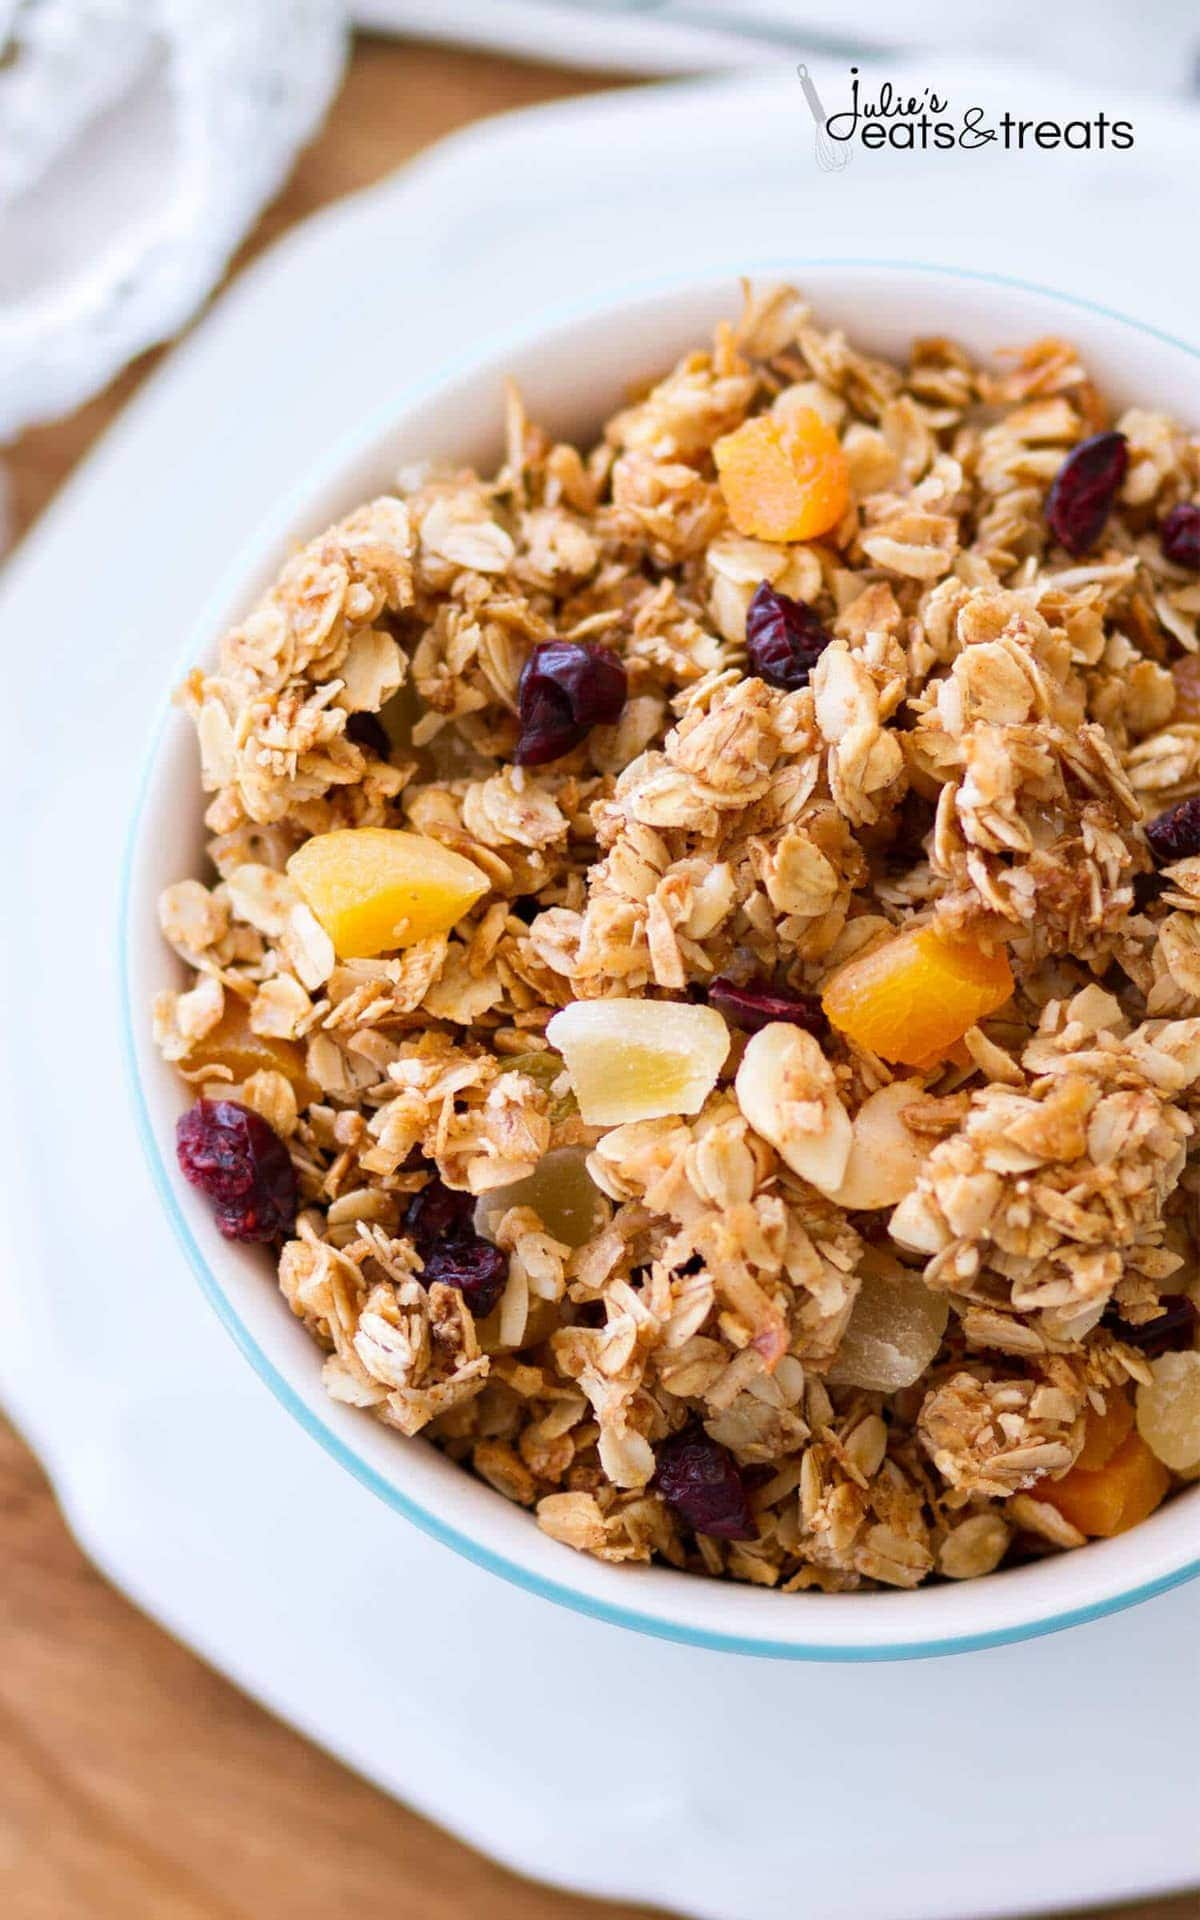 Homemade Tropical Coconut Granola - Julie's Eats & Treats